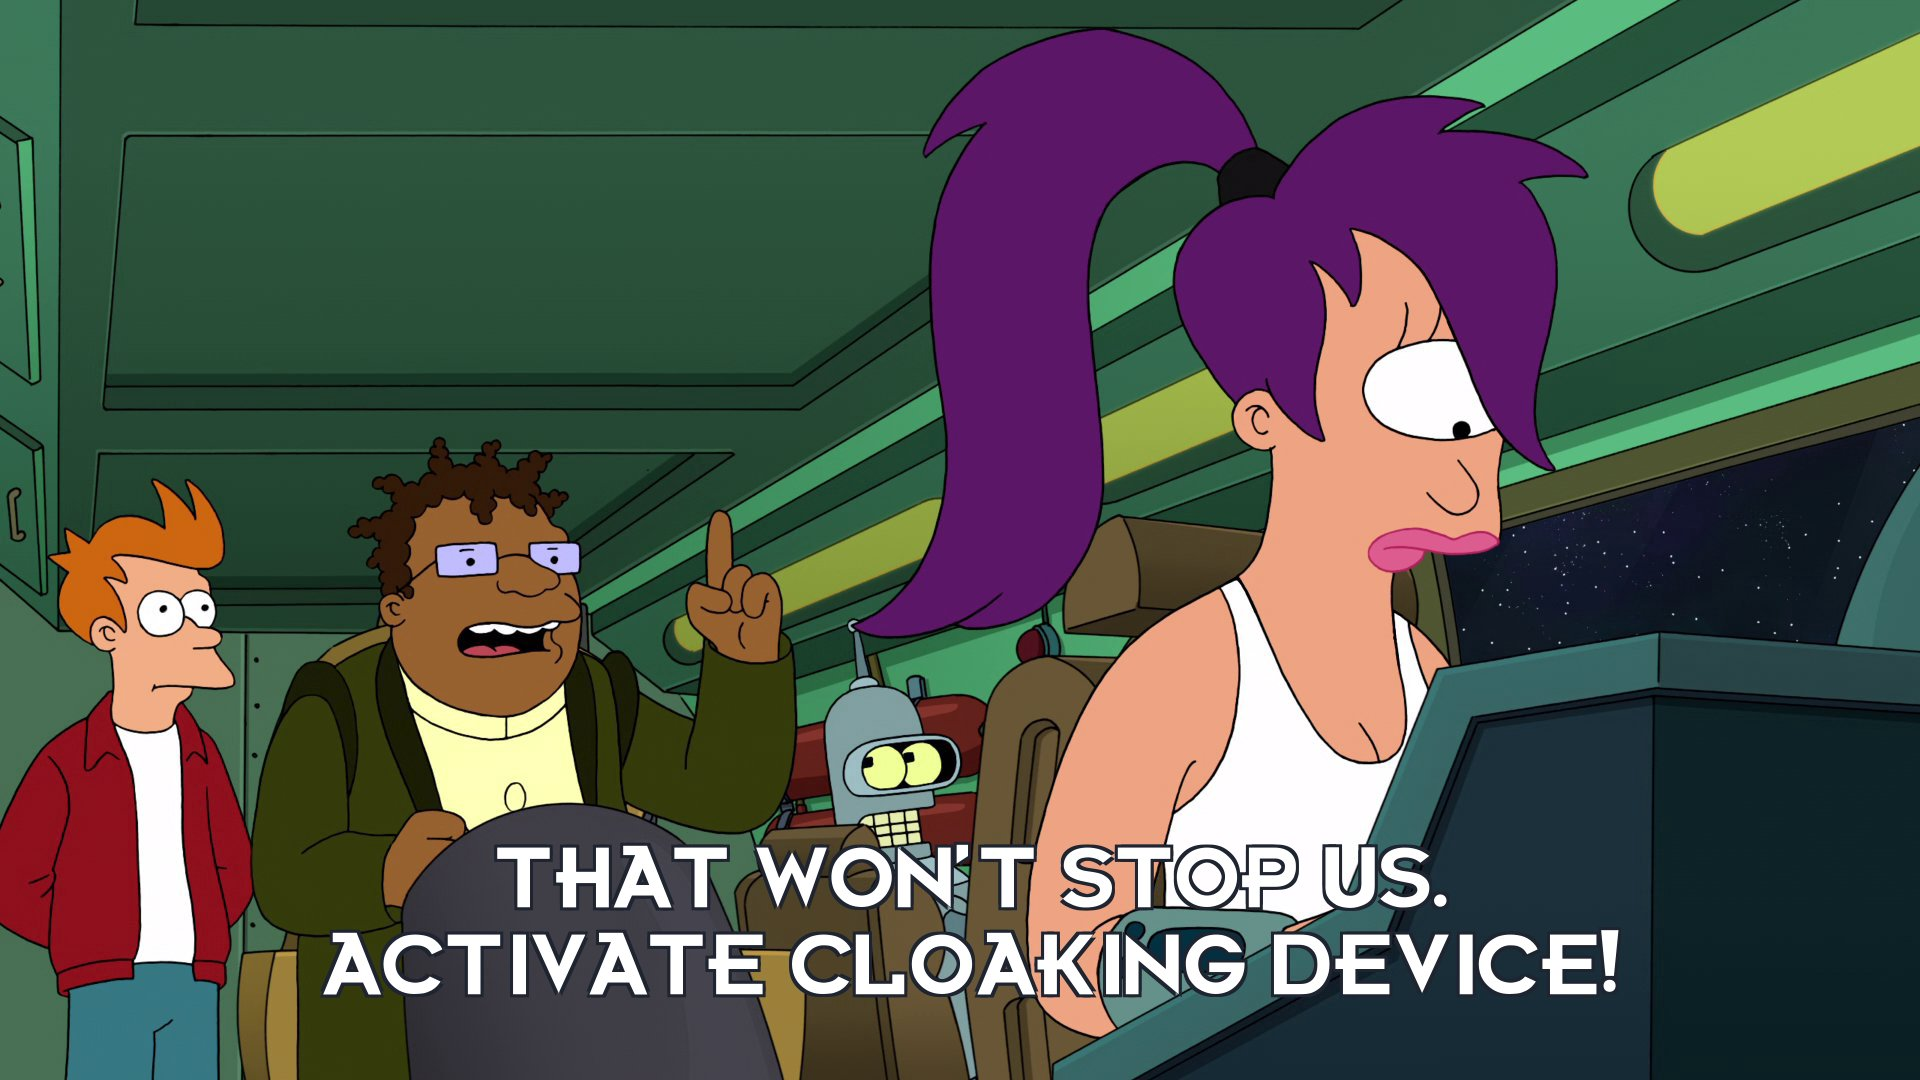 Hermes Conrad: That won't stop us. Activate cloaking device!